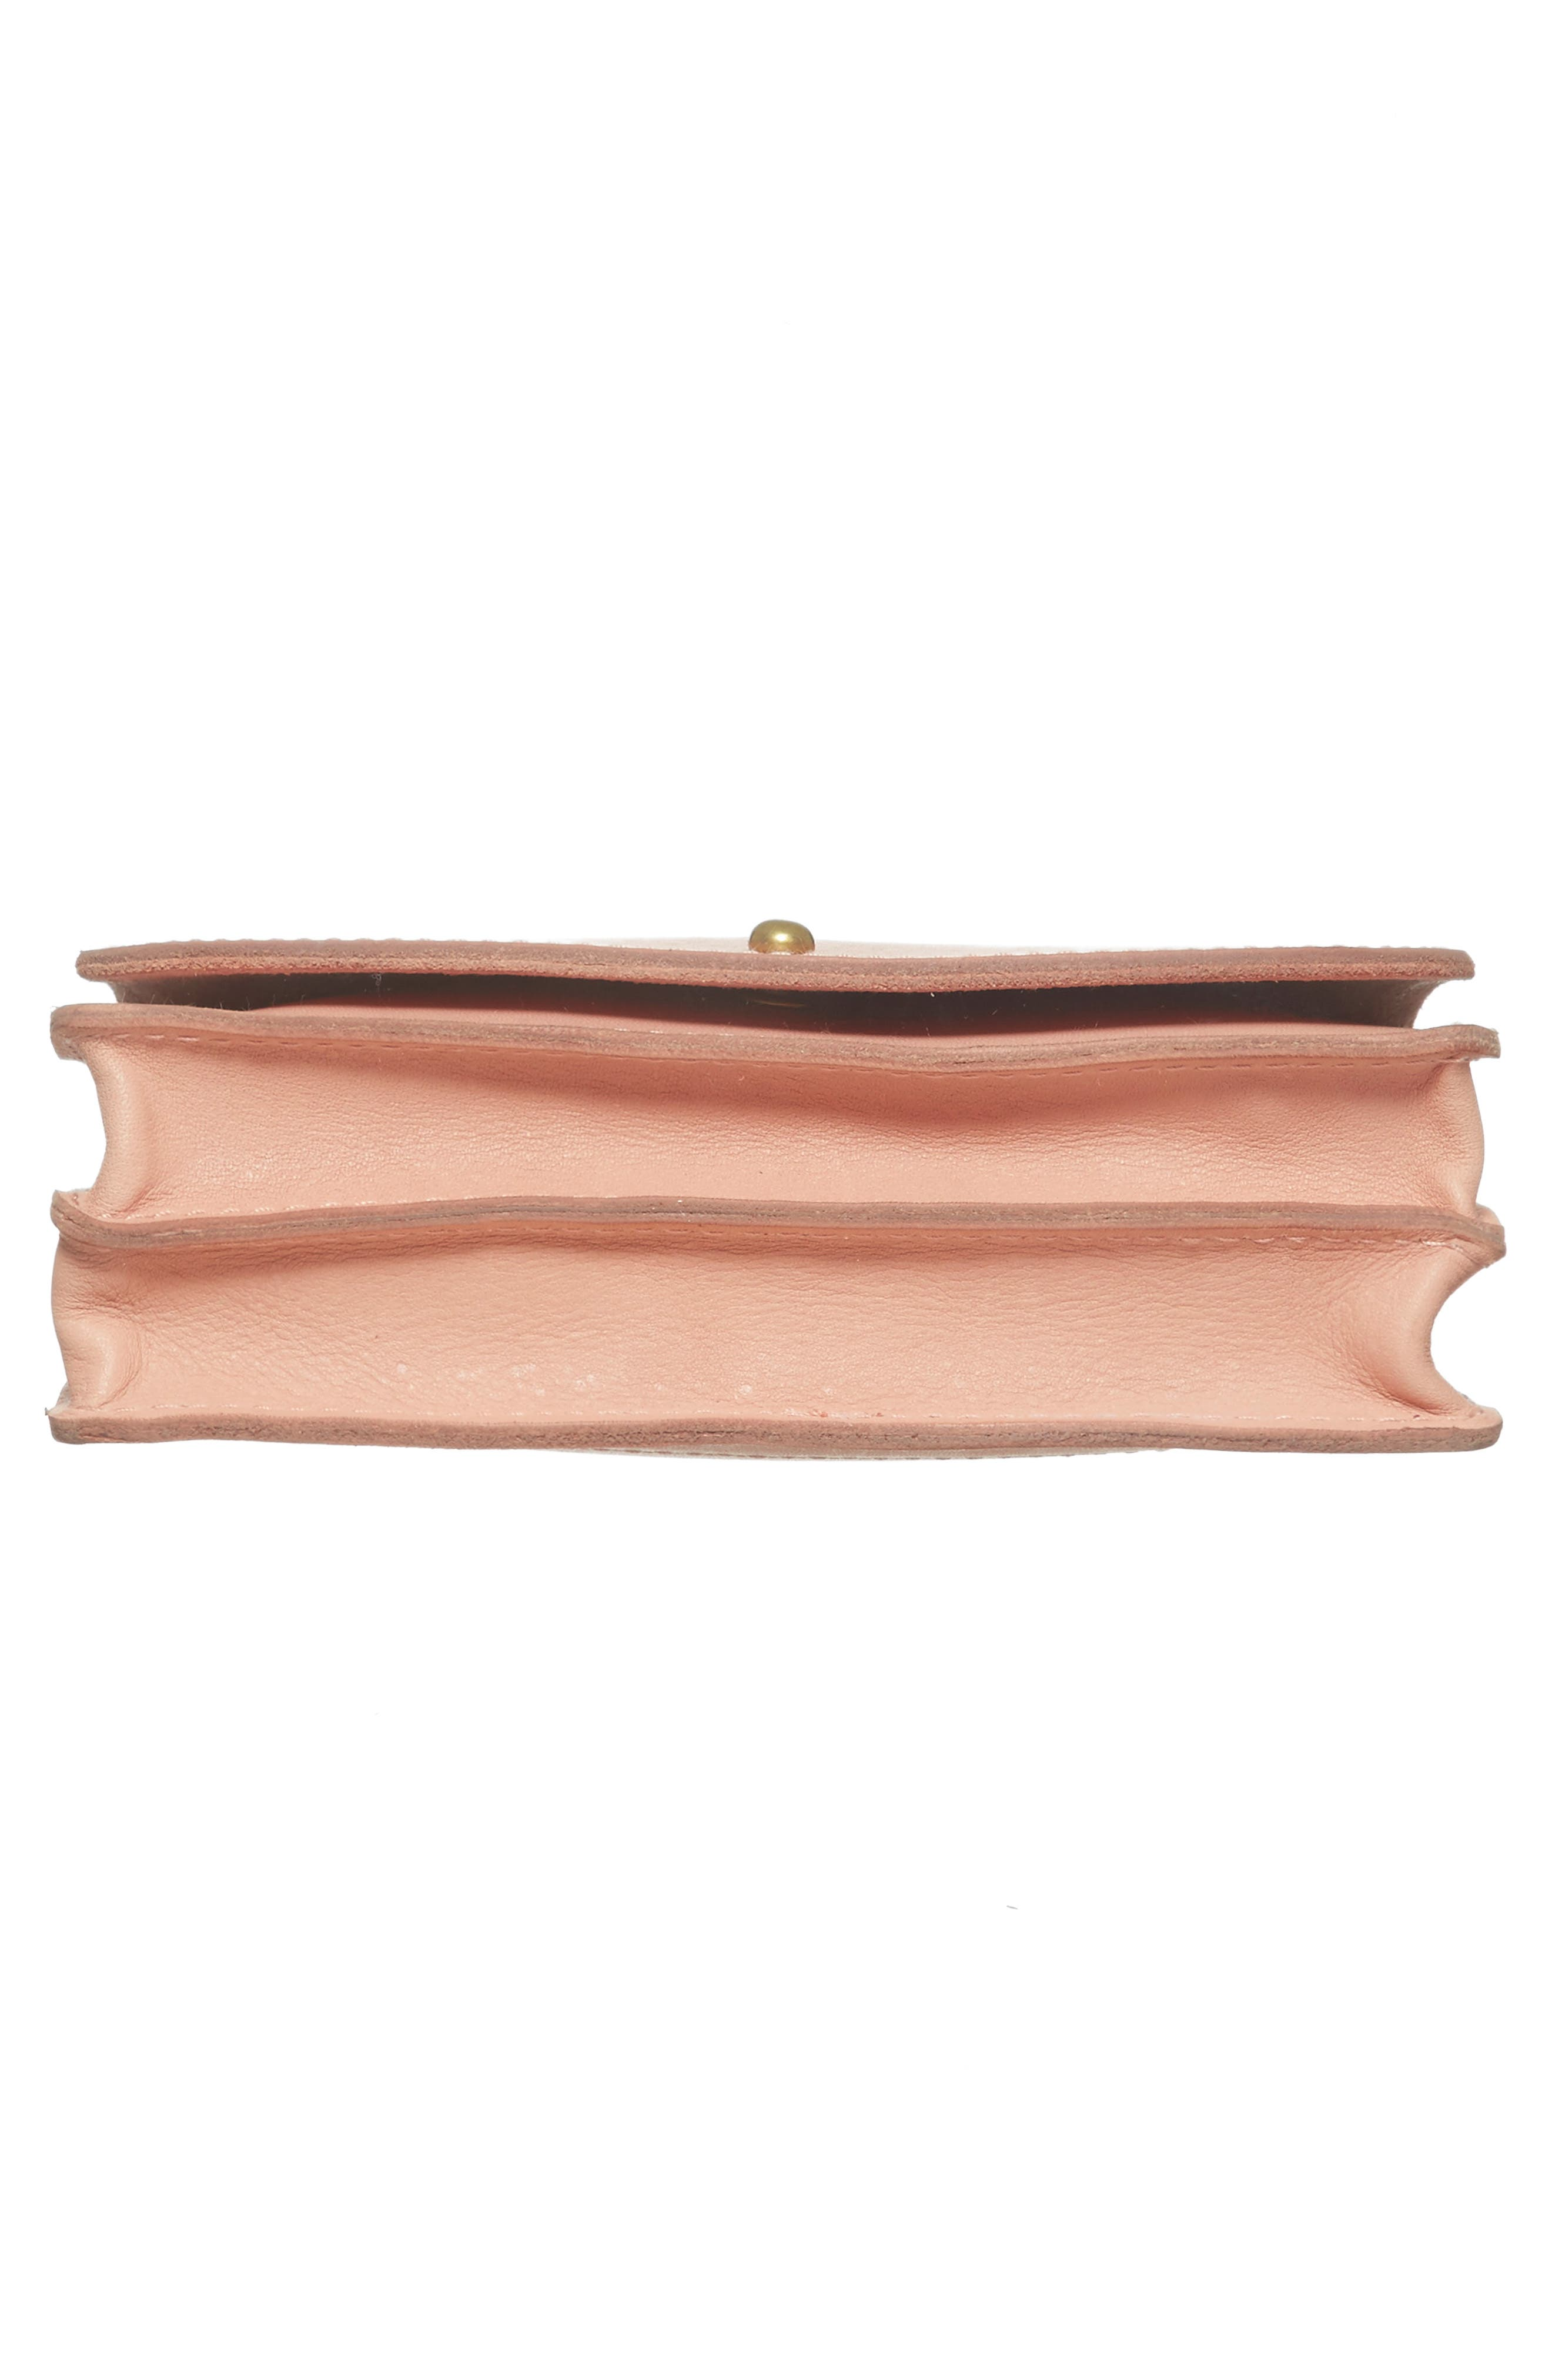 Leather Crossbody Wallet,                             Alternate thumbnail 6, color,                             Tinted Blush